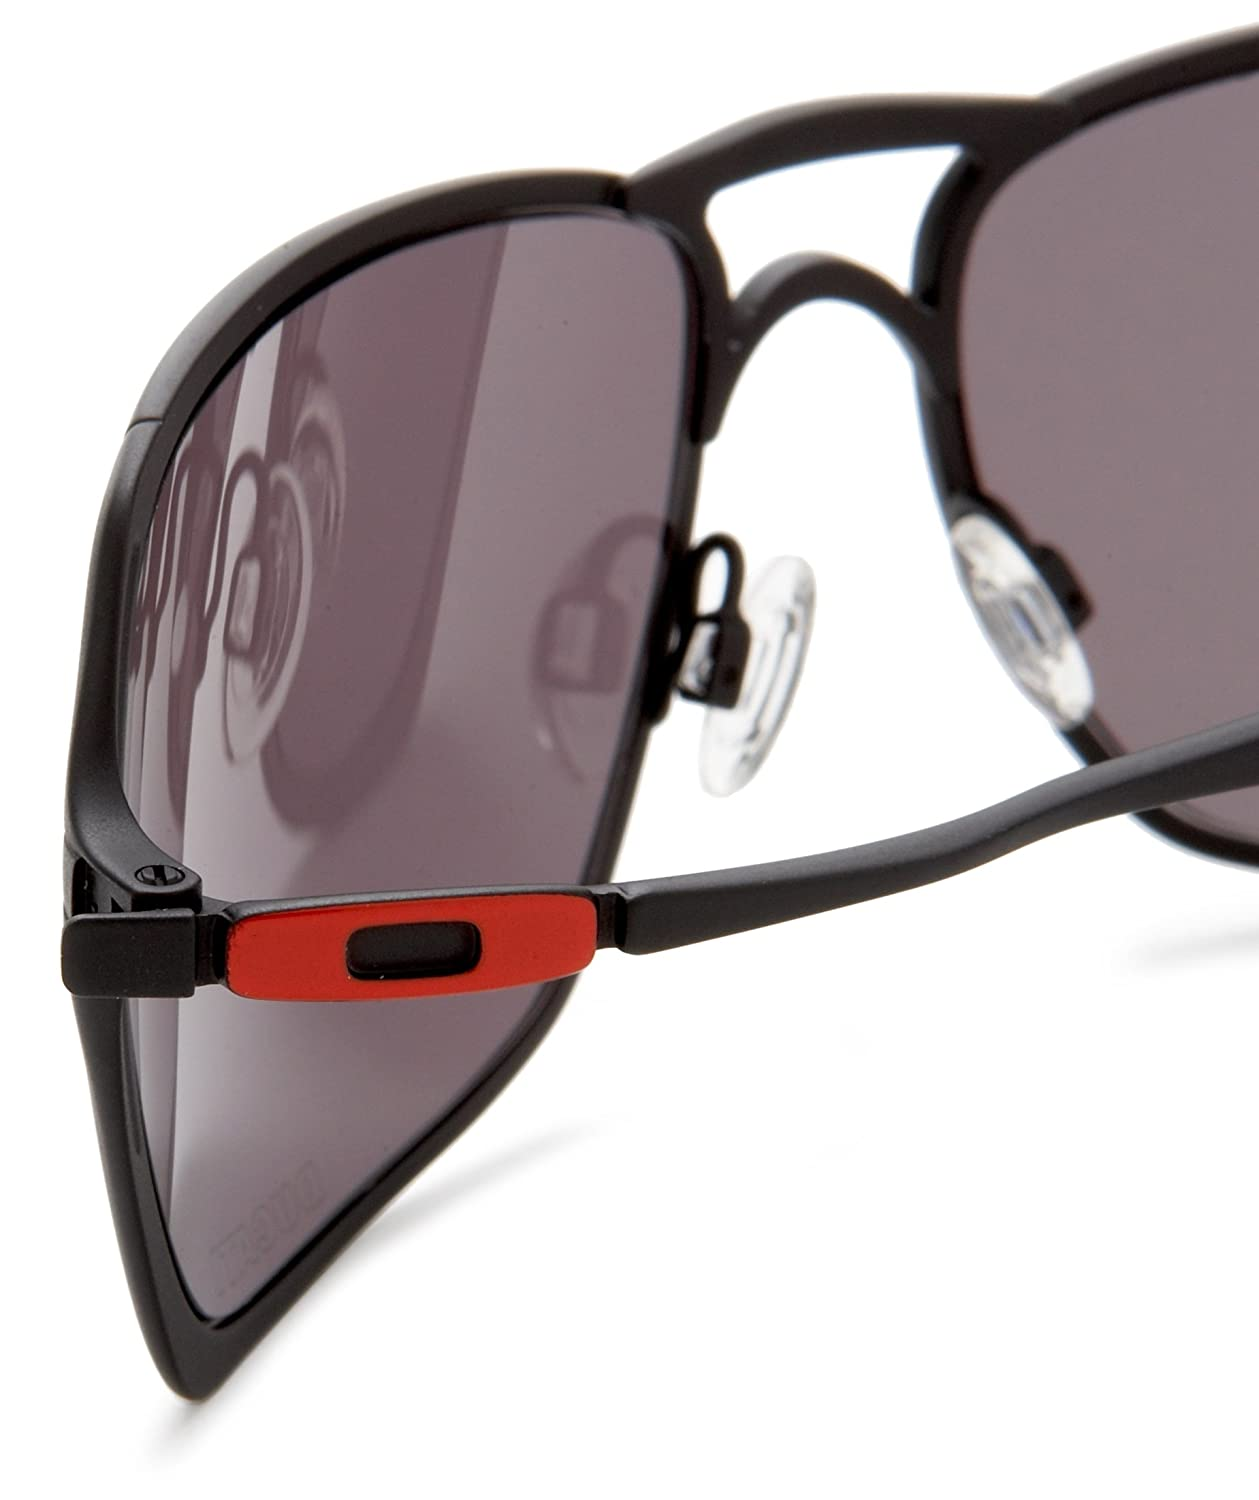 08c0112d2b Oakley Inmate Oo4029 Matt Black Frame Warm Grey Lens Metal Sunglasses   Amazon.co.uk  Sports   Outdoors